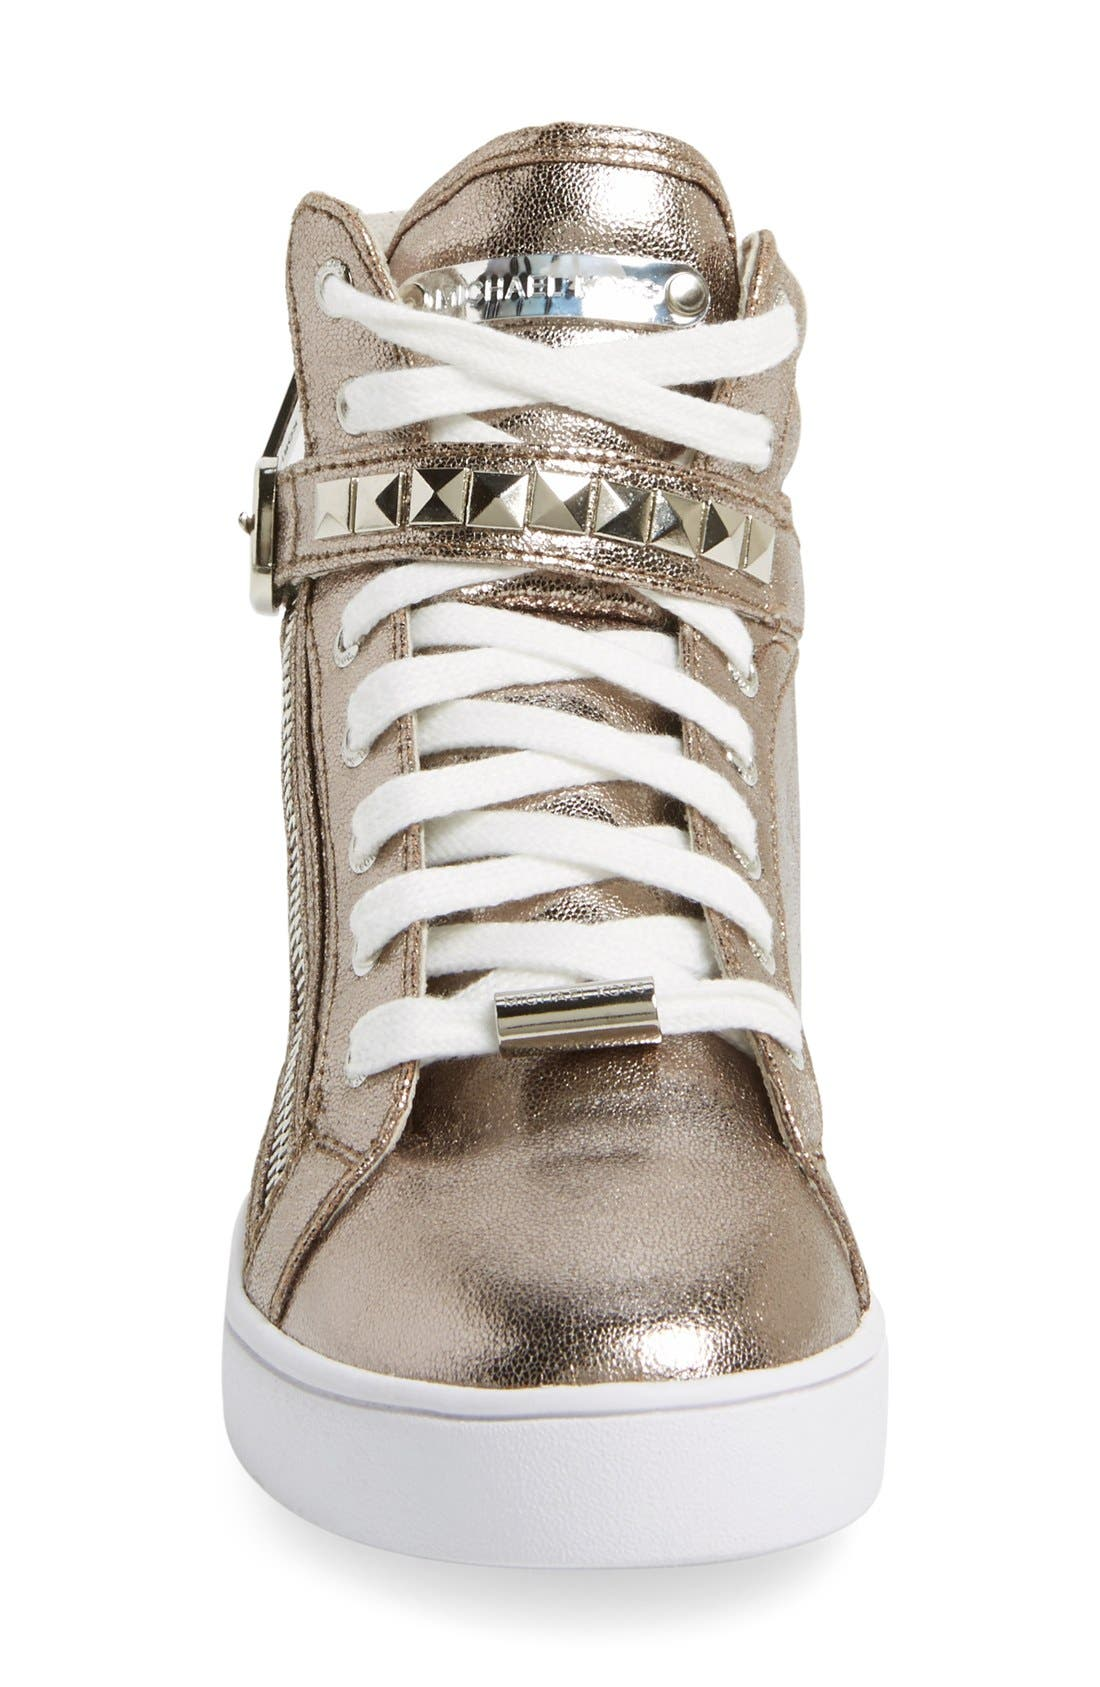 'Ivy Rory' High Top Sneaker,                             Alternate thumbnail 11, color,